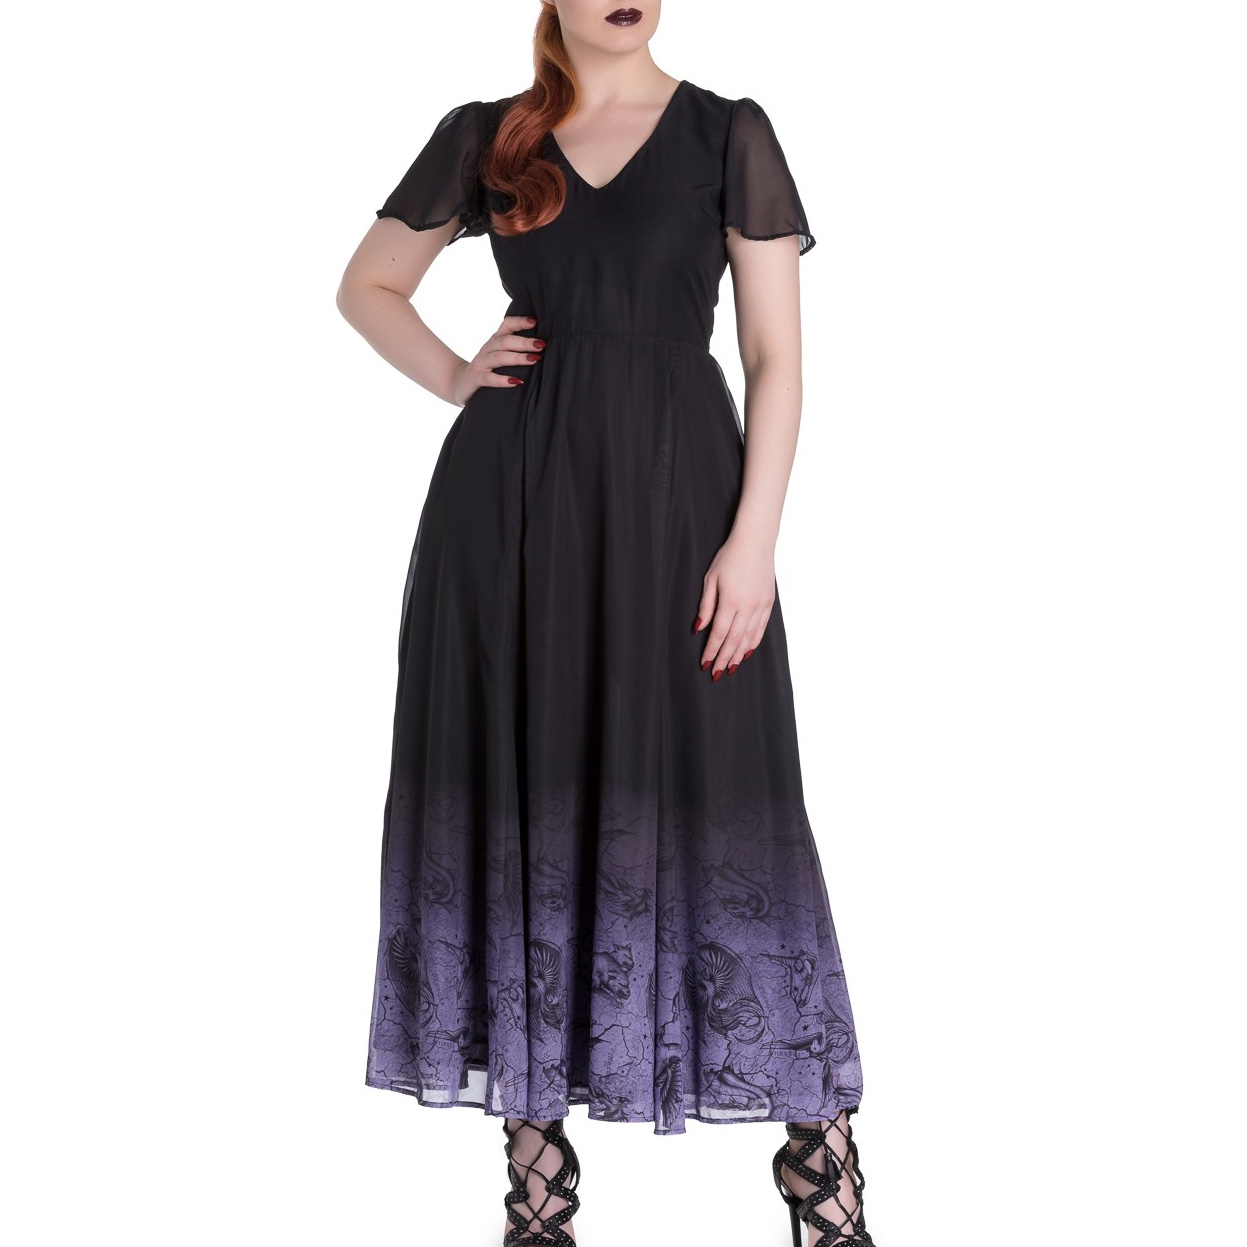 Hell-Bunny-Spin-Doctor-Goth-Maxi-Dress-EVADINE-Purple-Black-All-Sizes thumbnail 11